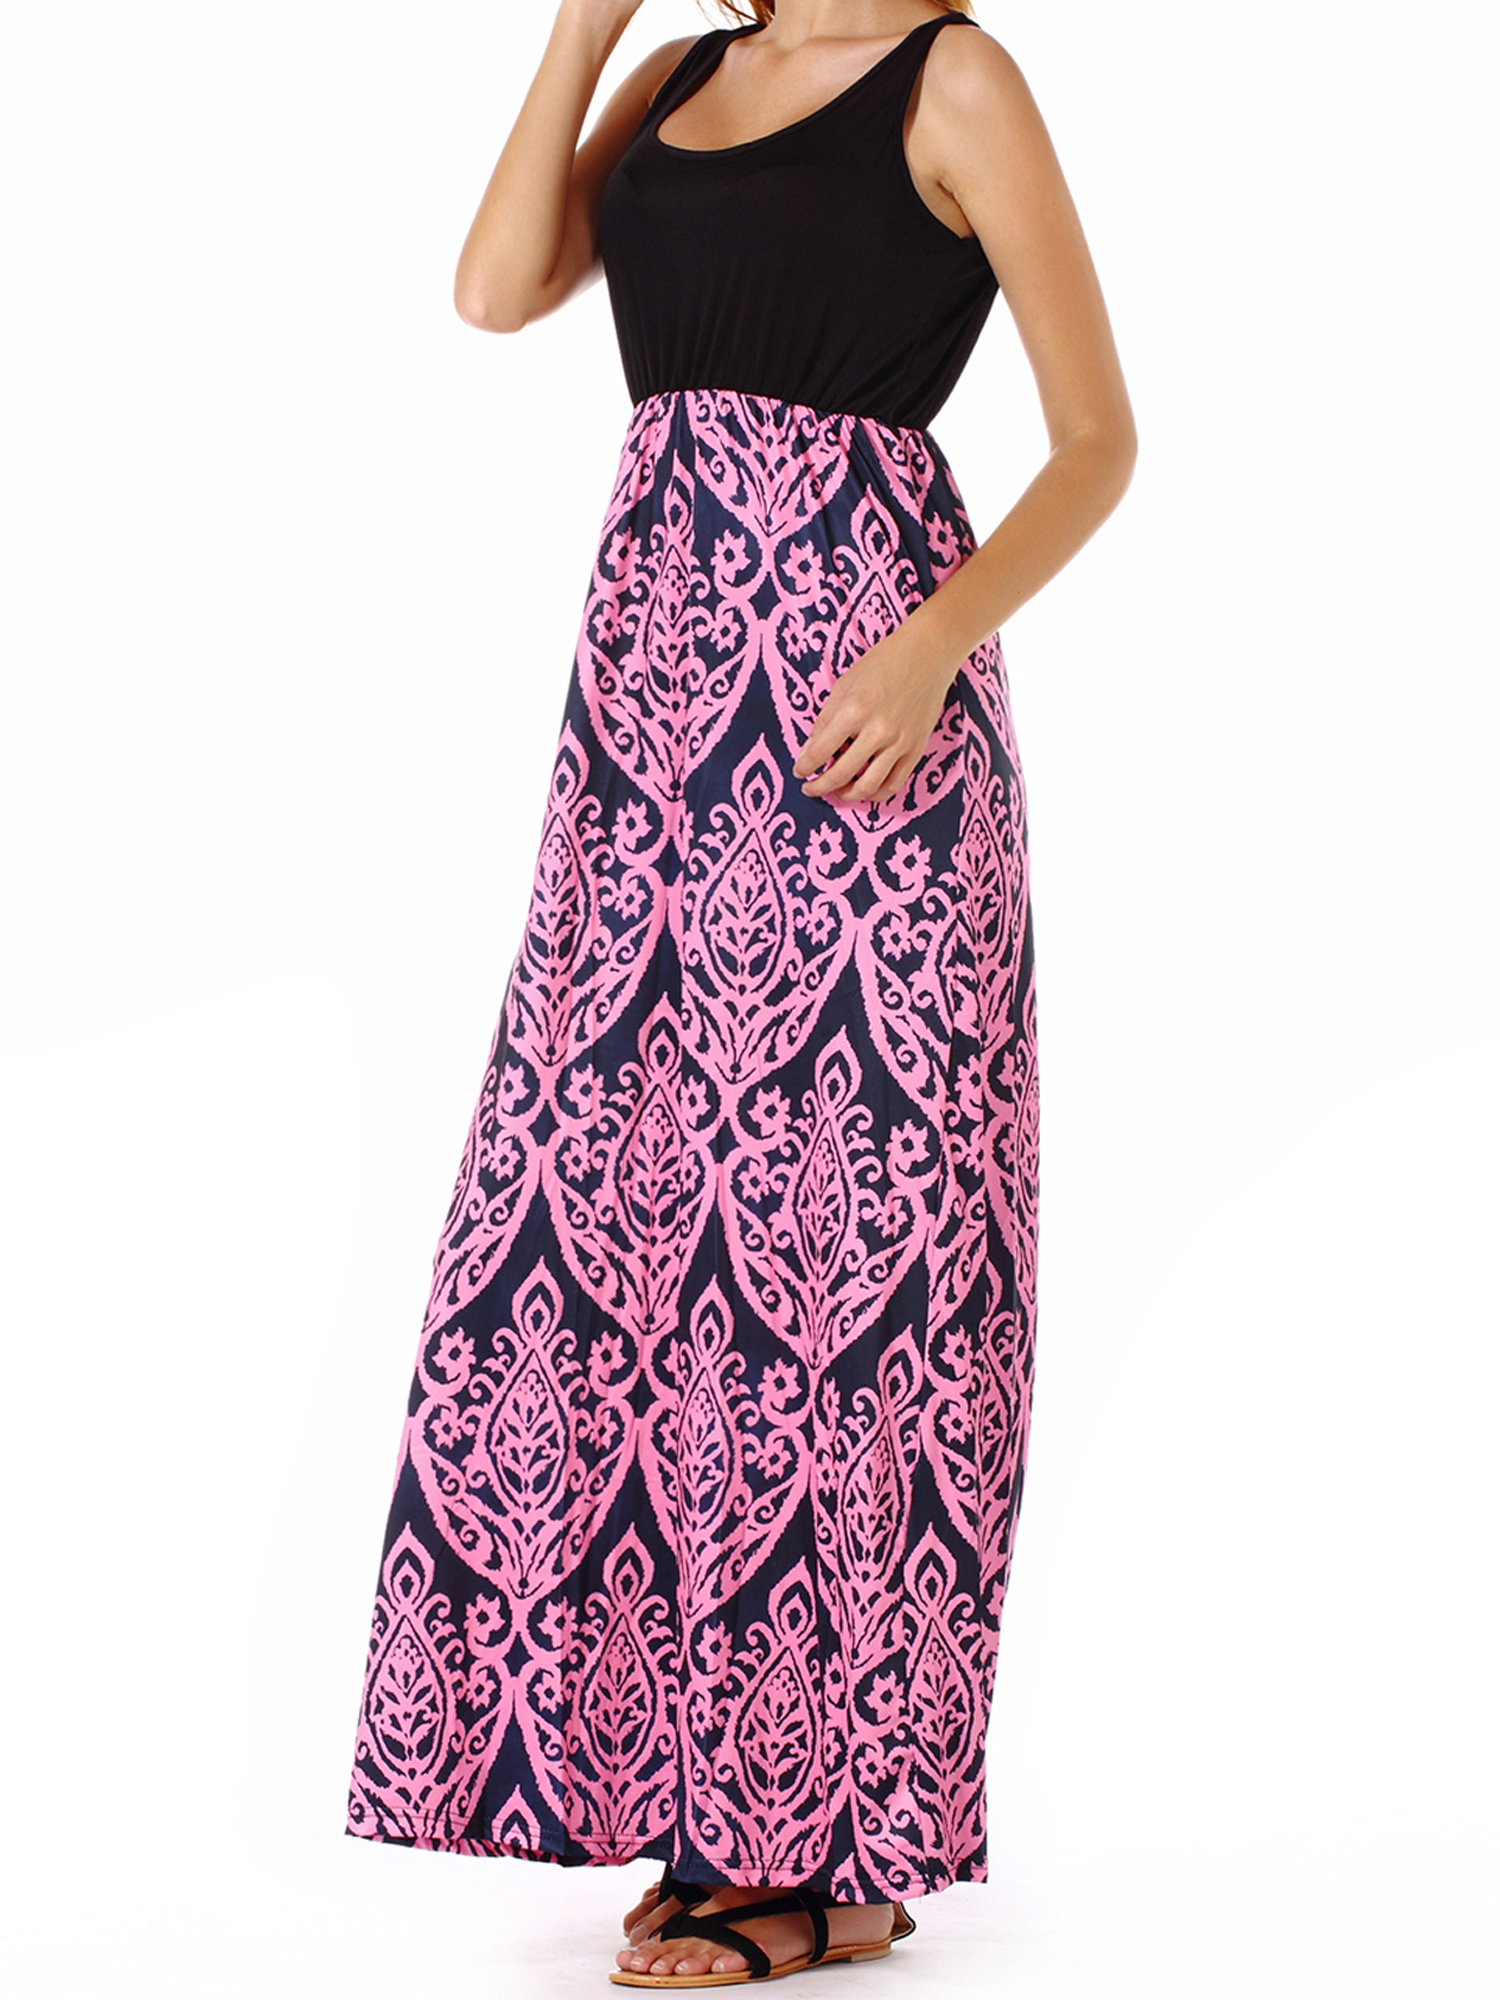 Womens Casual Long Dresses Boho Butterfly Printed V Neck Sleeveless A-line Swing Maxi Dress with Pockets Summer Holiday Beach Party Sundress Chic Graphic Tank Dress Plus Size